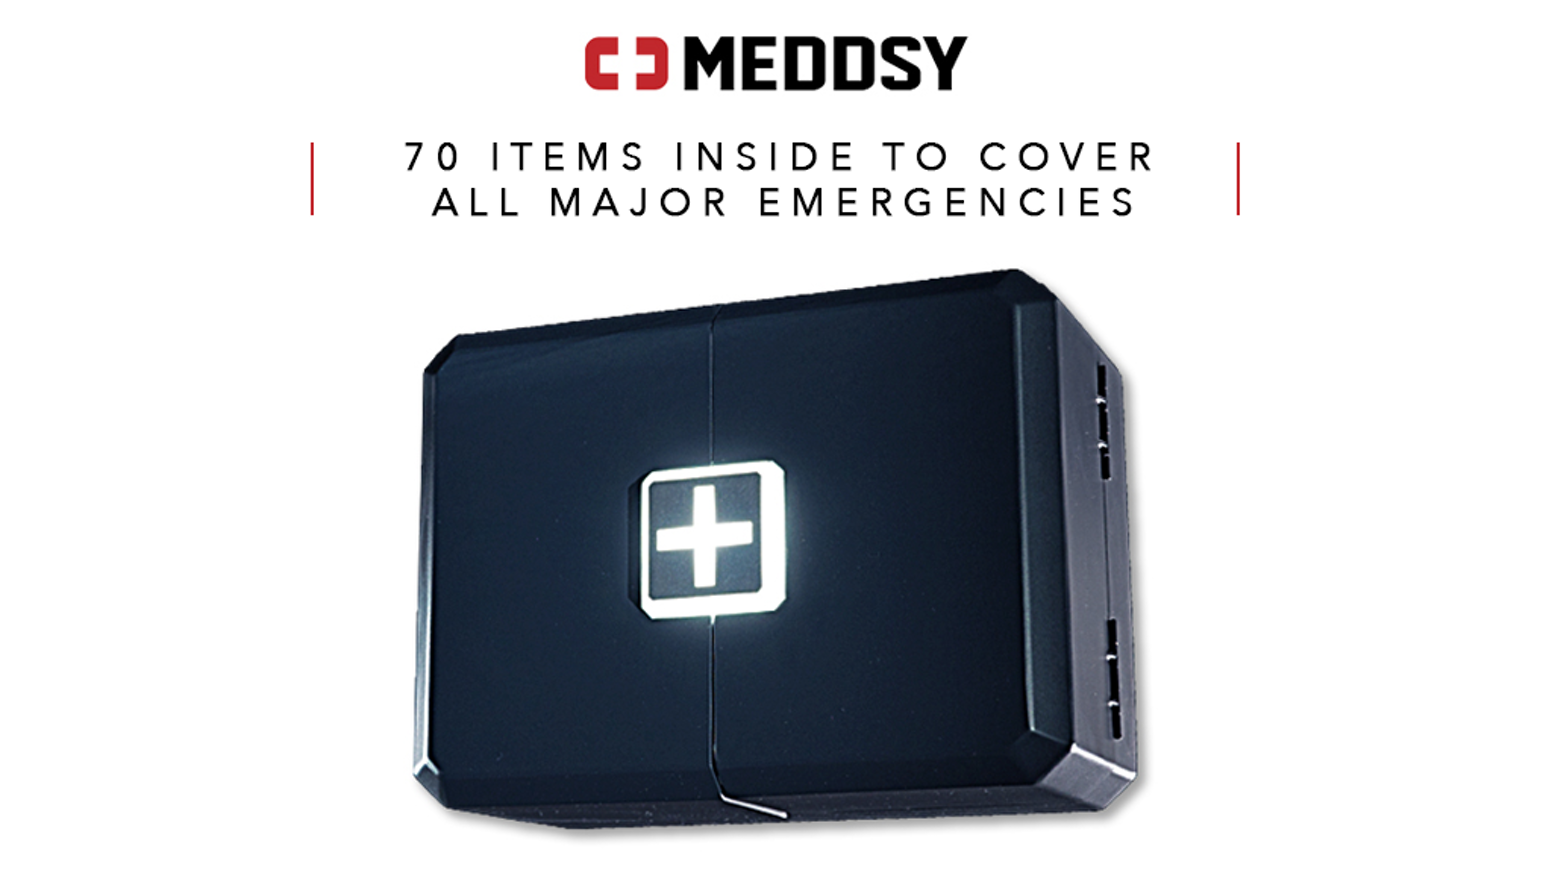 70 items inside to cover all major emergencies. Engineered by travelers, doctors, soldiers, rescue and survival experts.